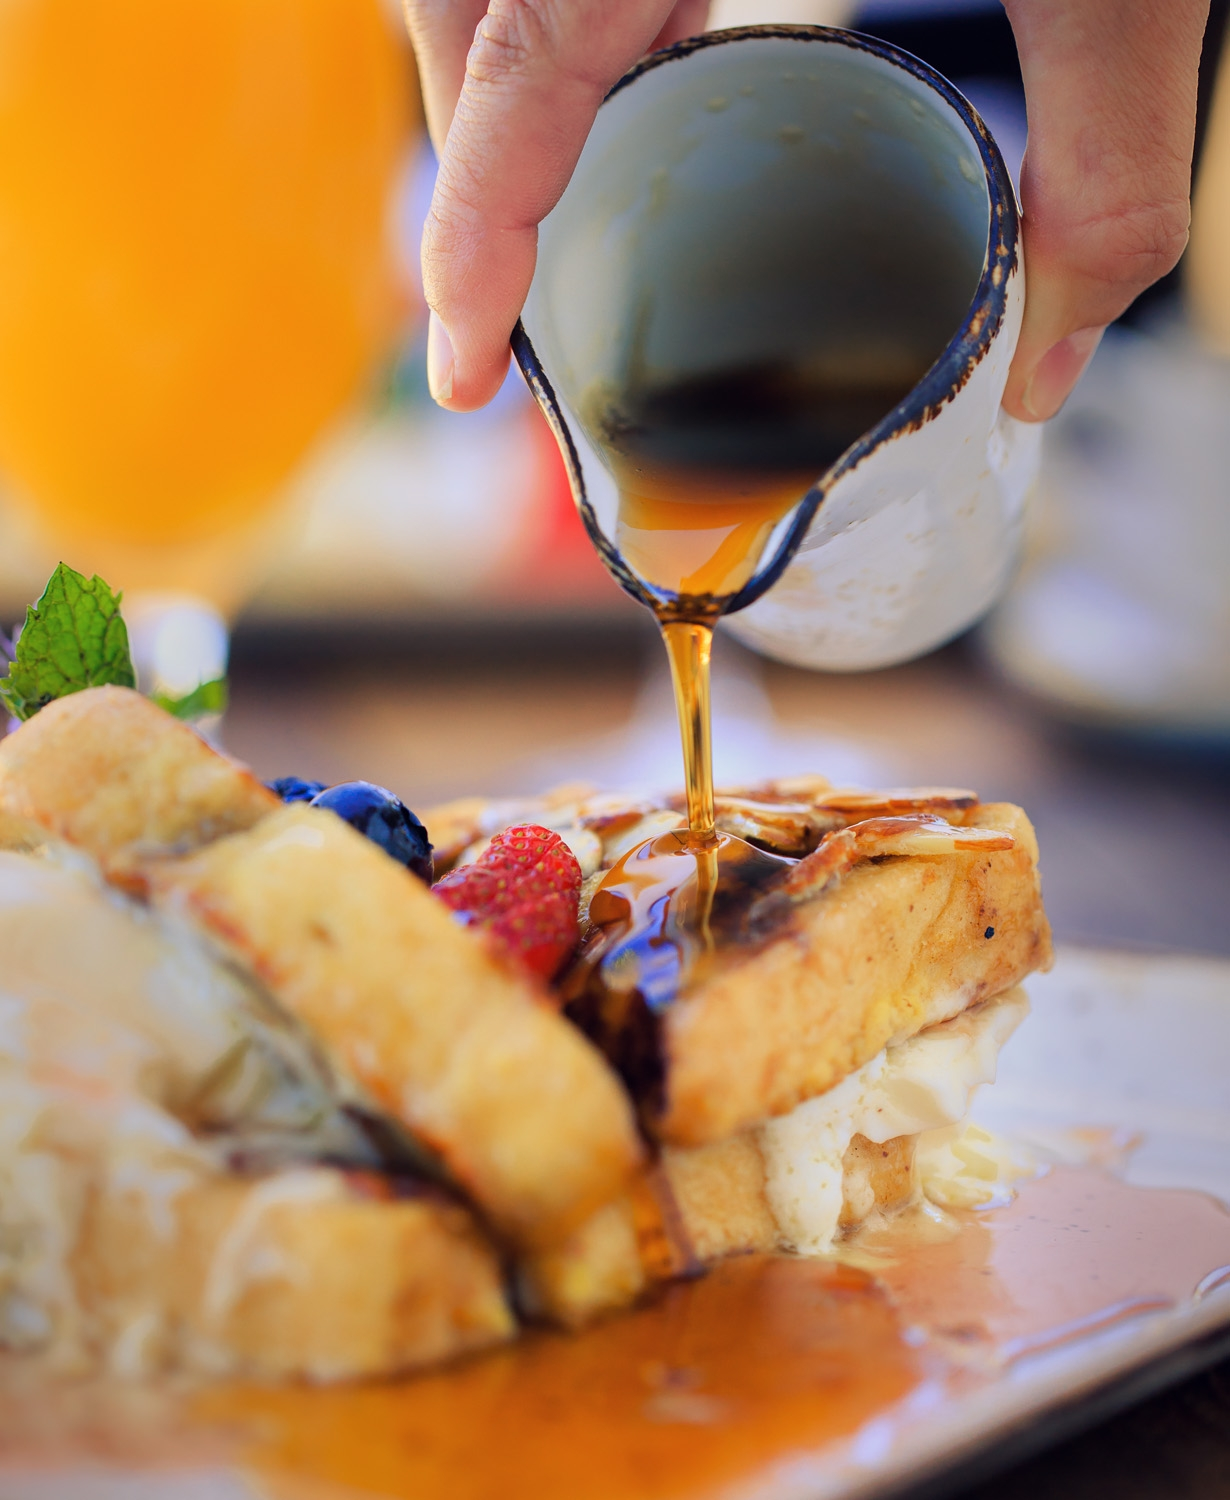 Cello Restaurant's french toast with syrup being poured over the